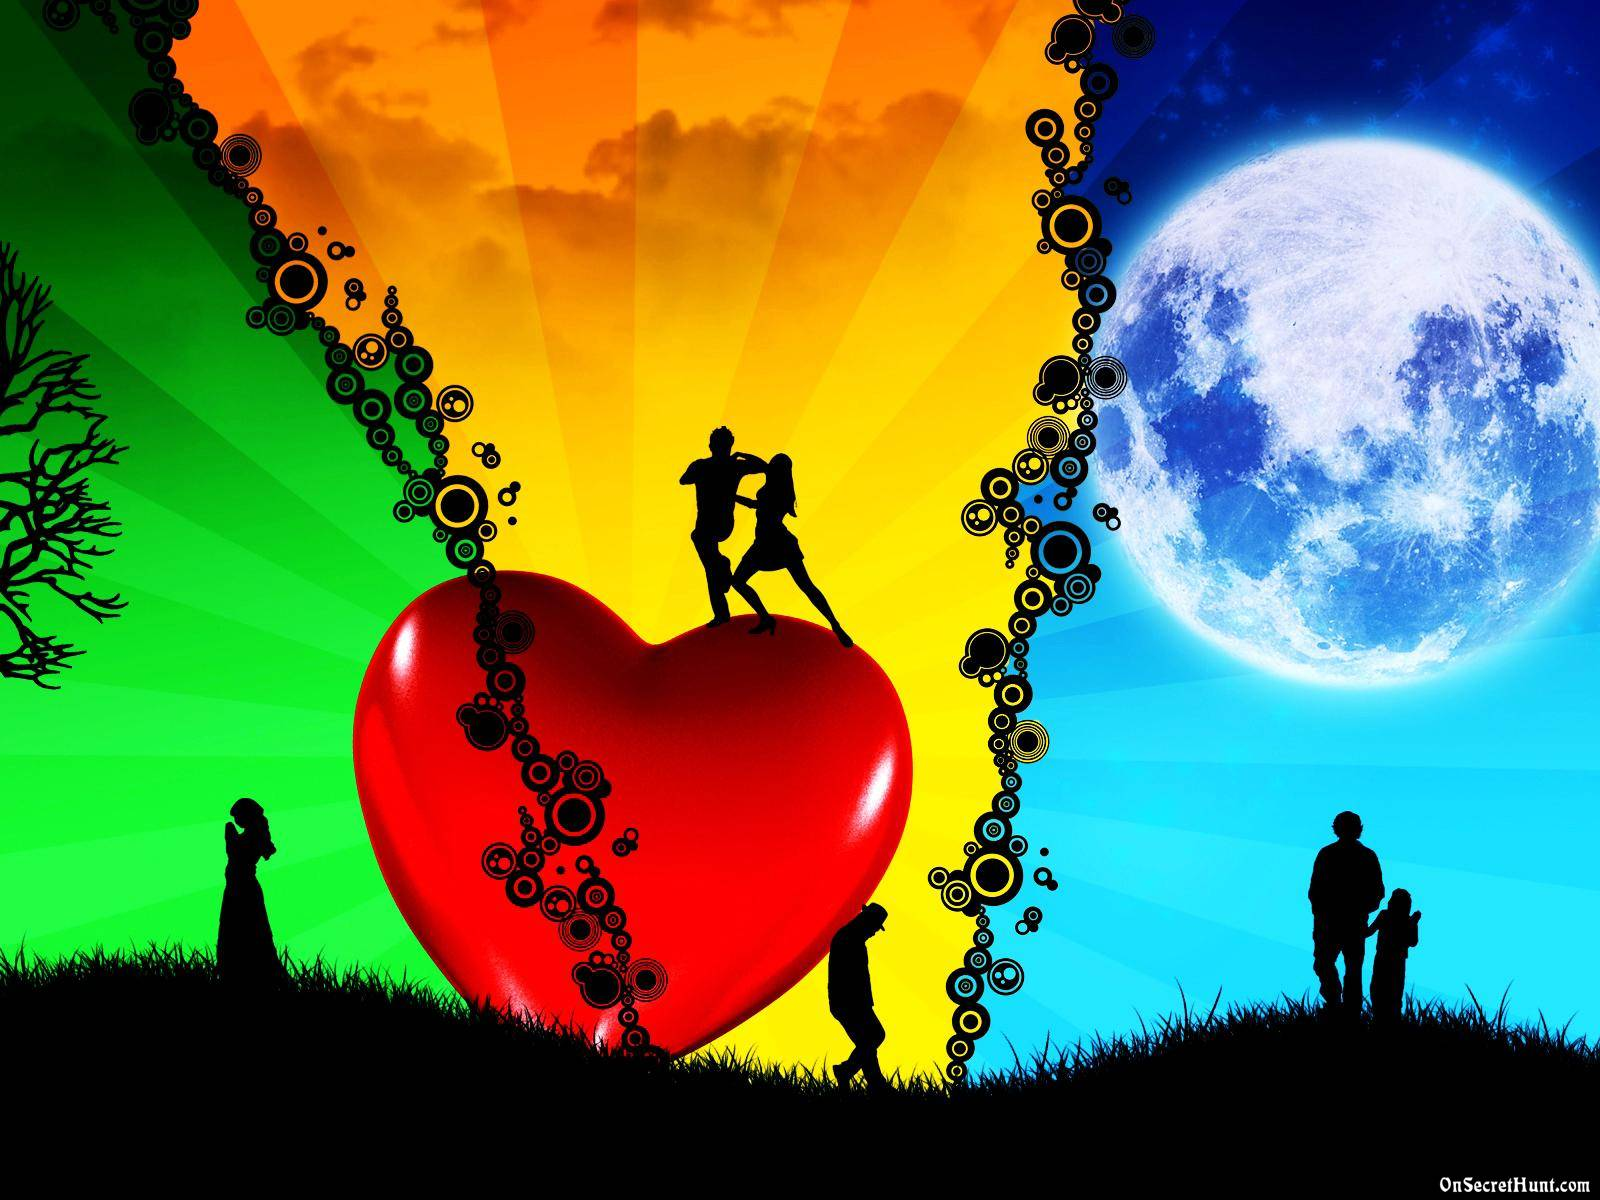 Love Wallpaper For Desktop Best : Love Wallpapers 3D - Wallpaper cave